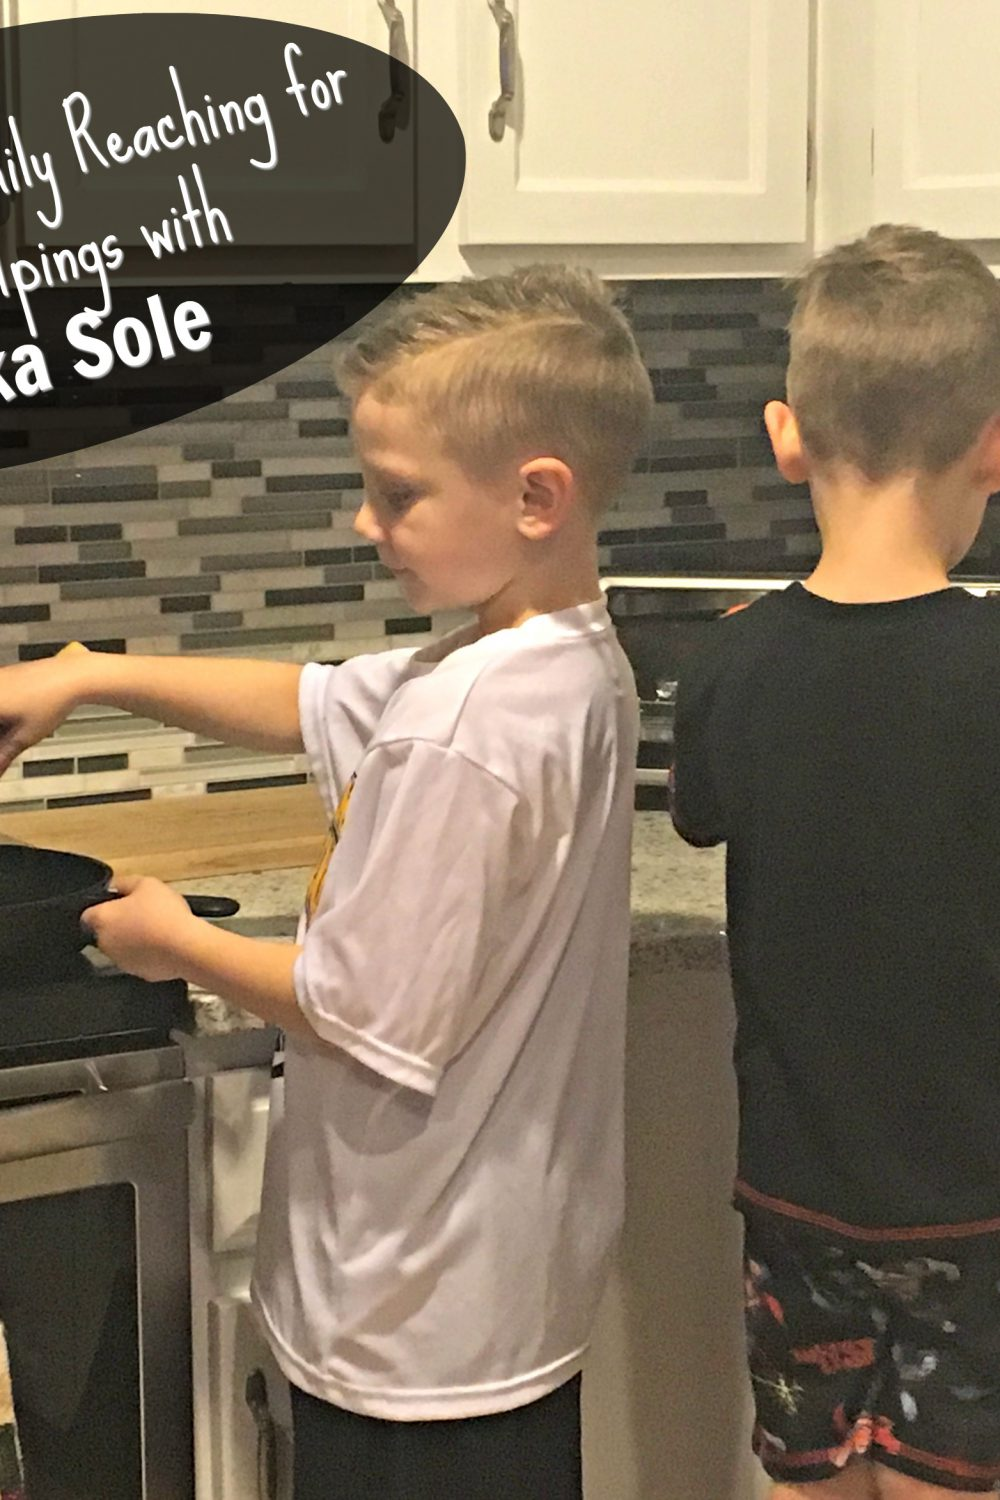 Count on Your Family Reaching for Second Helpings with Alaska Sole